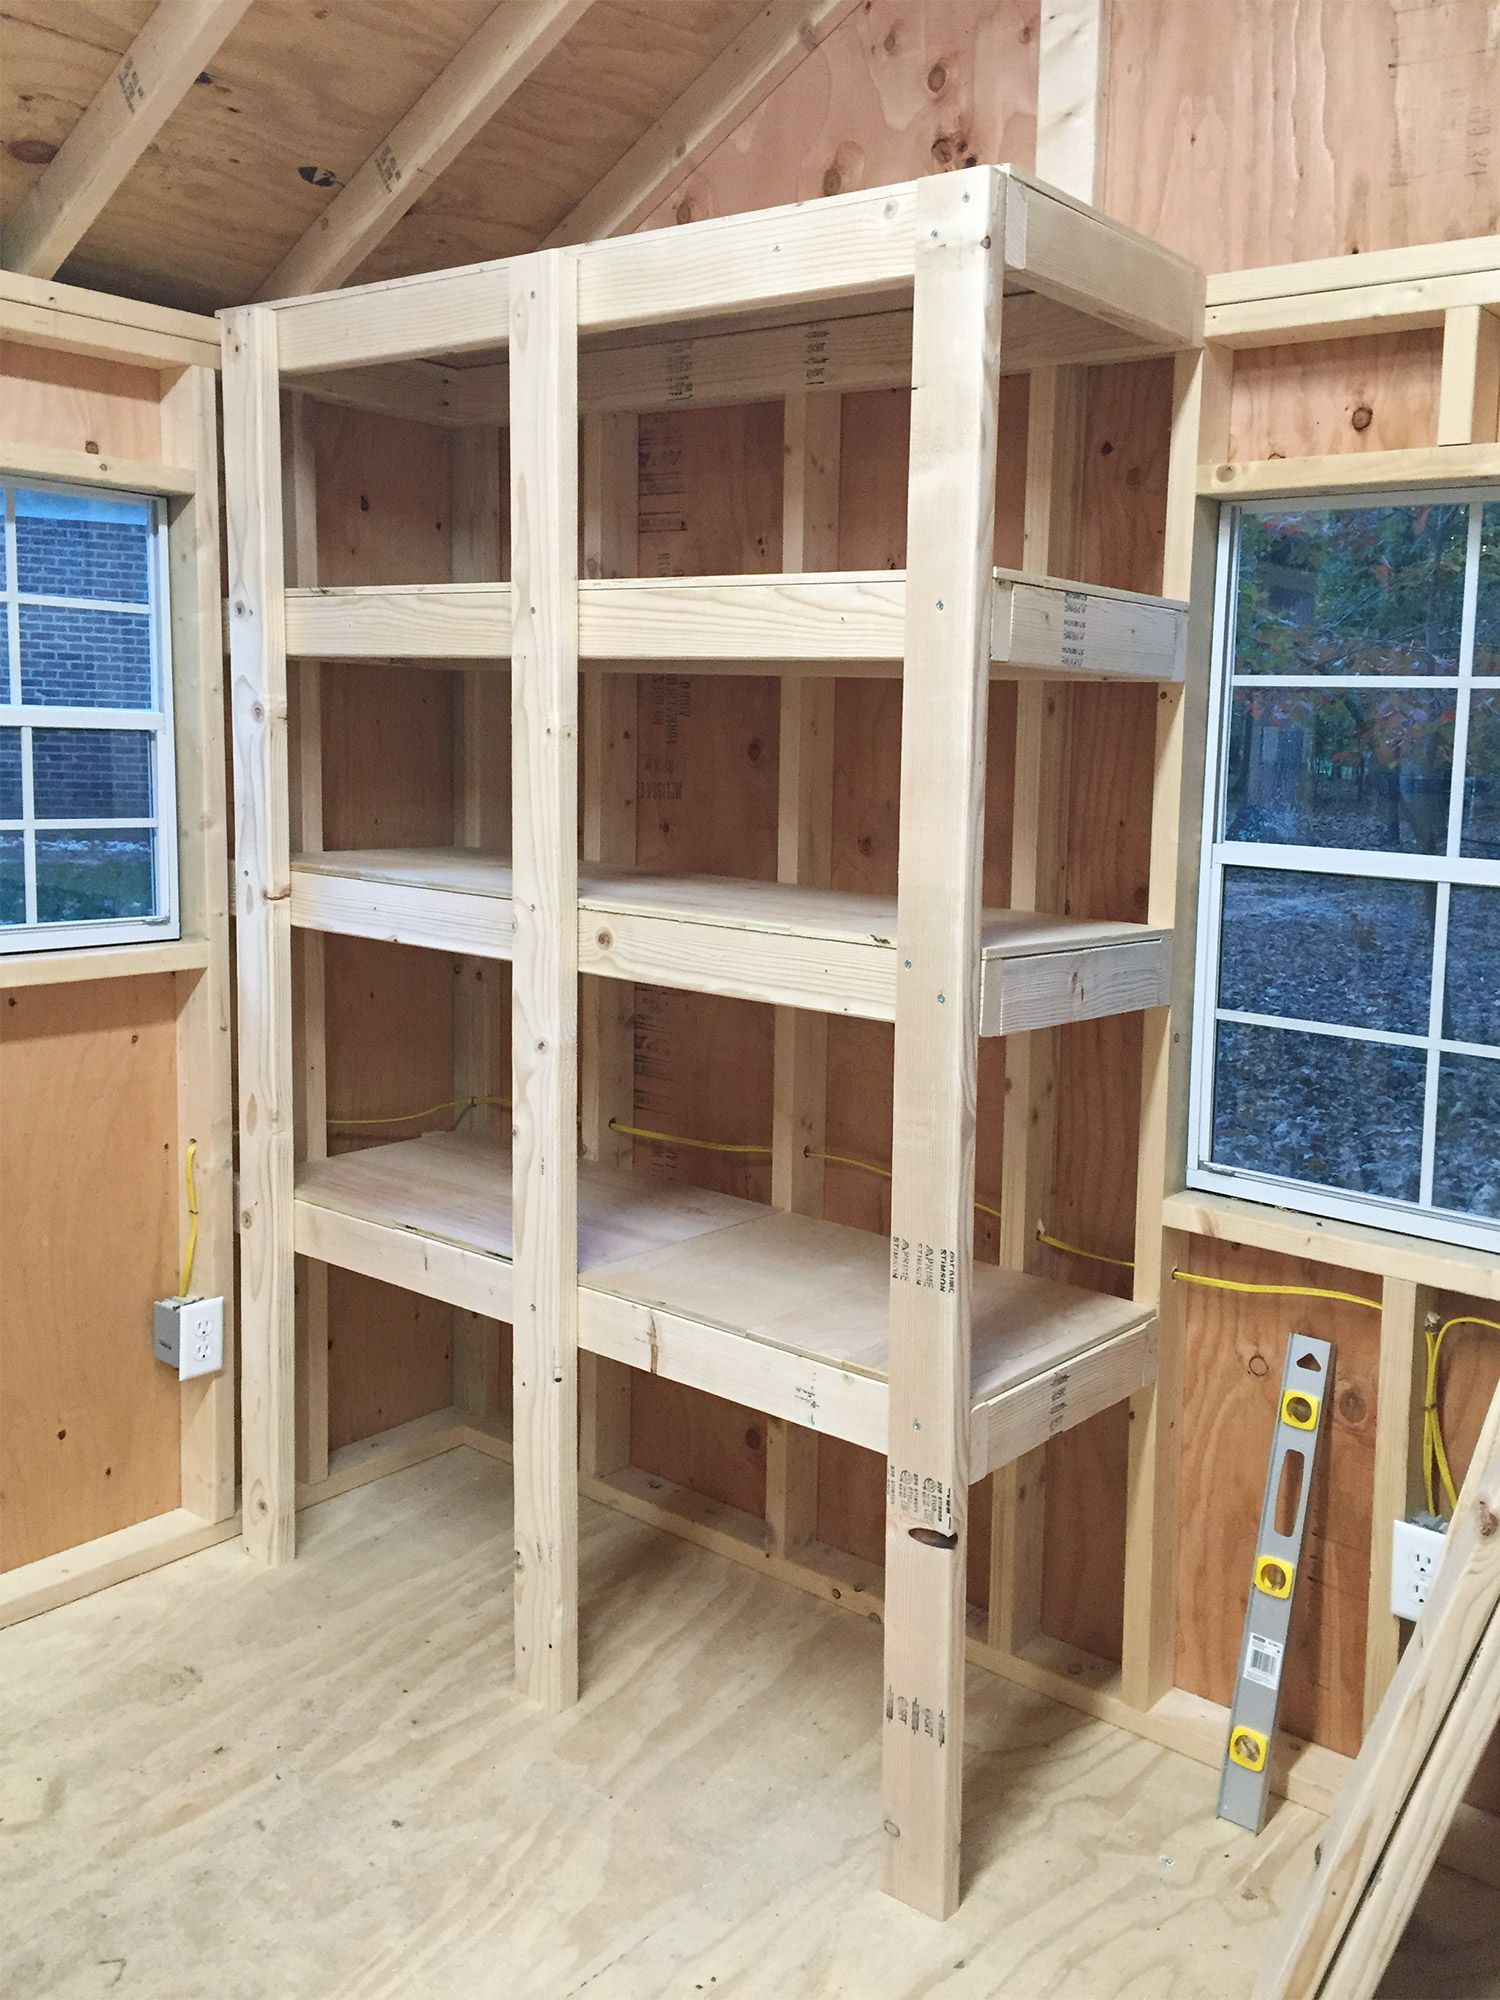 Garage Shelving Design Ideas 4 Shed Storage Ideas For Tons Of Added Function Diy Ideas Diy